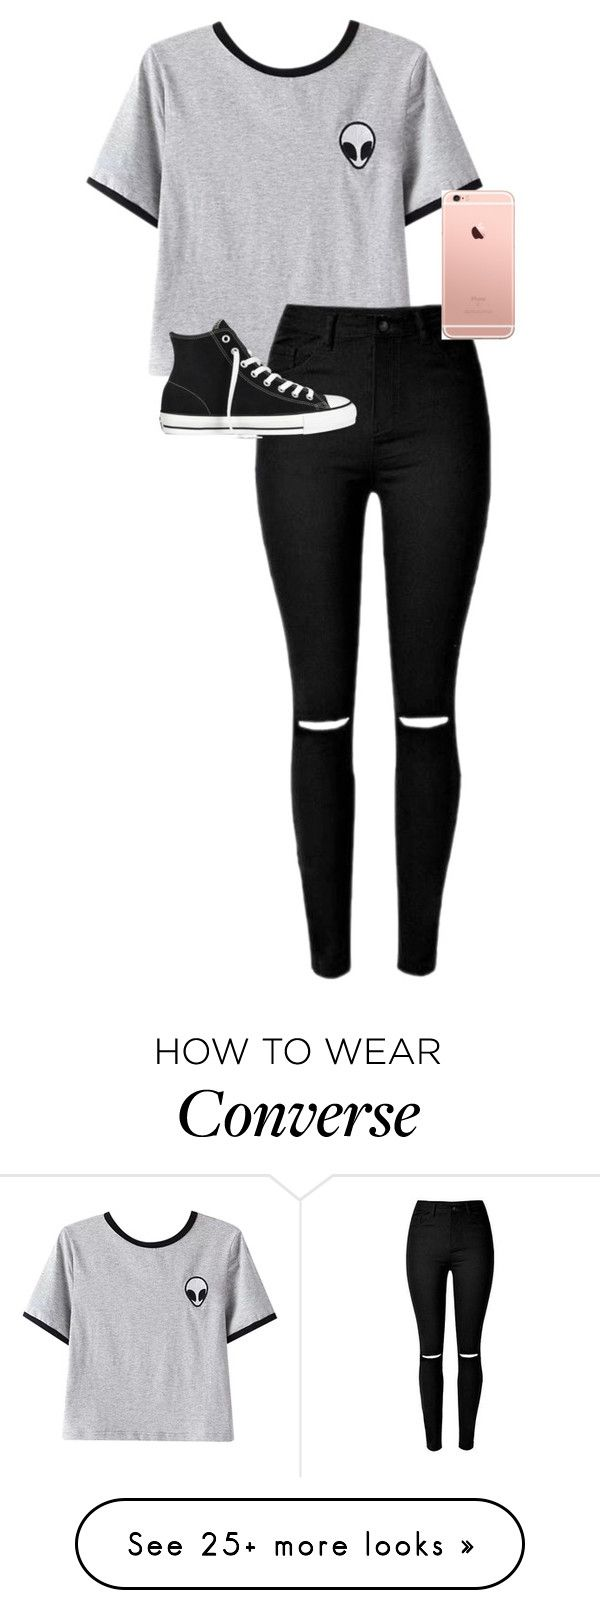 """""""././../././///////.."""" by anna-mae-equils on Polyvore featuring Chicnova Fashion, Converse, women's clothing, women, female, woman, misses and juniors"""